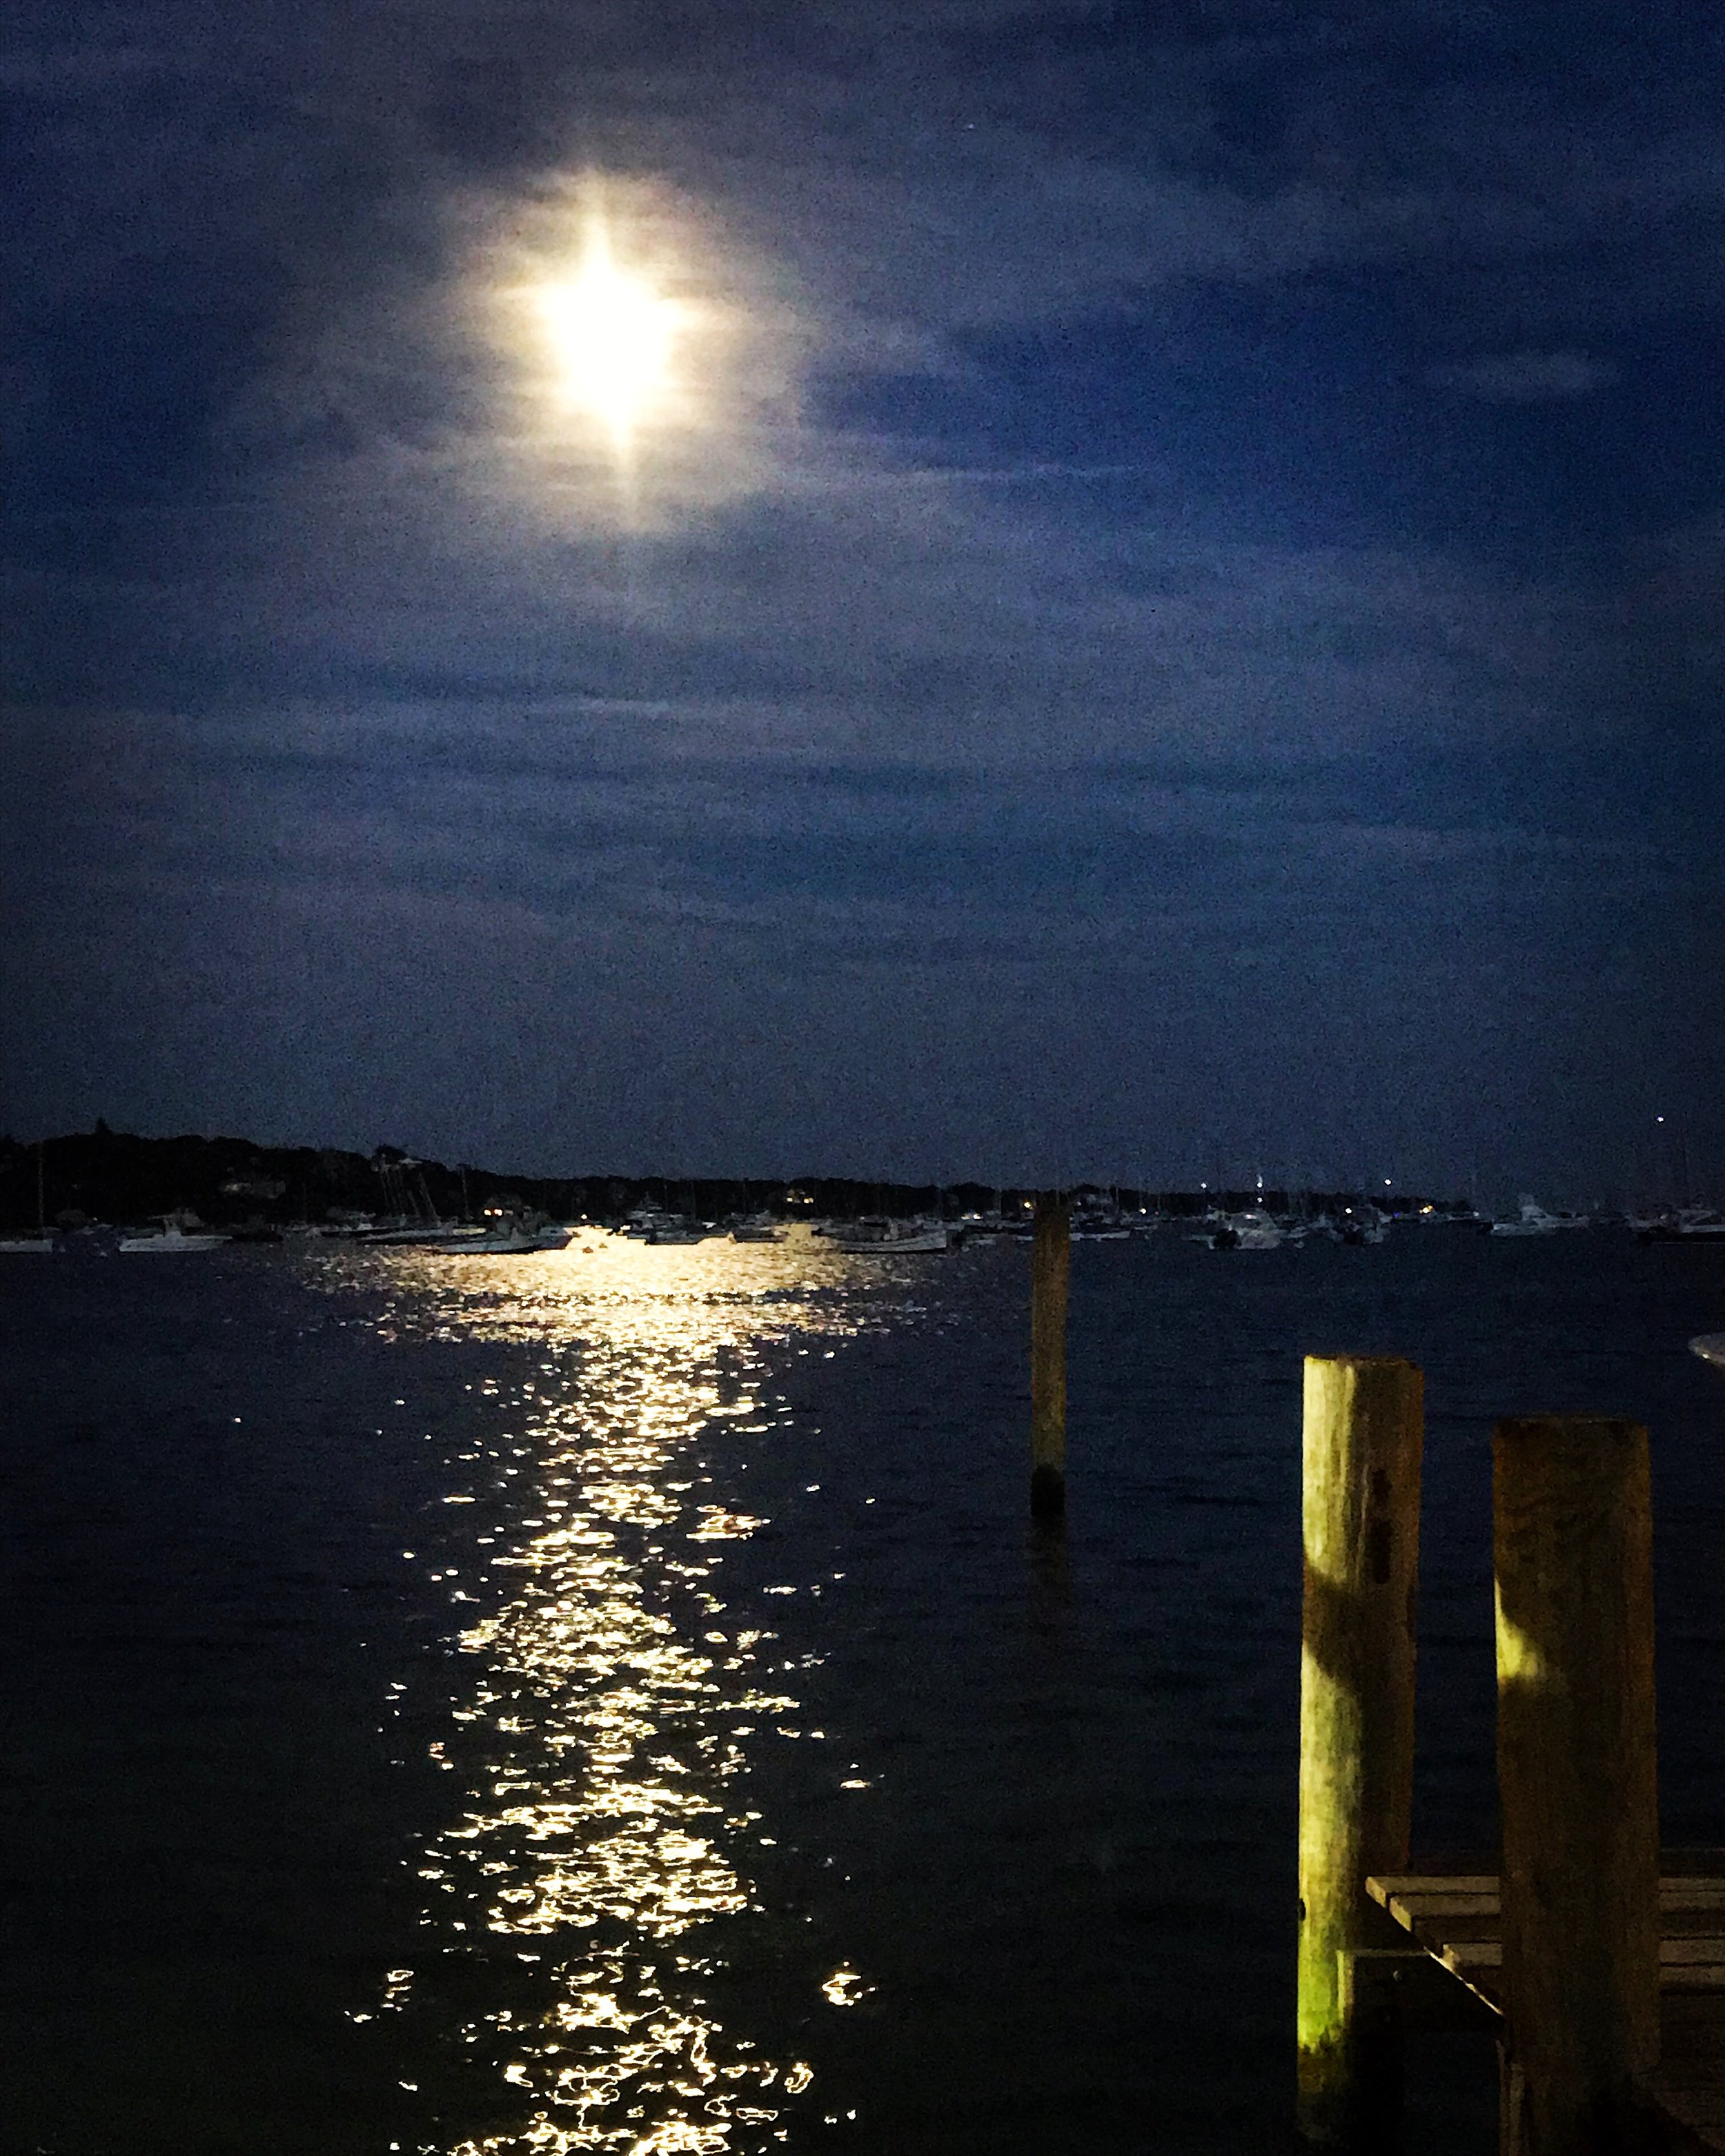 Edgartown Harbor lit by an almost full moon